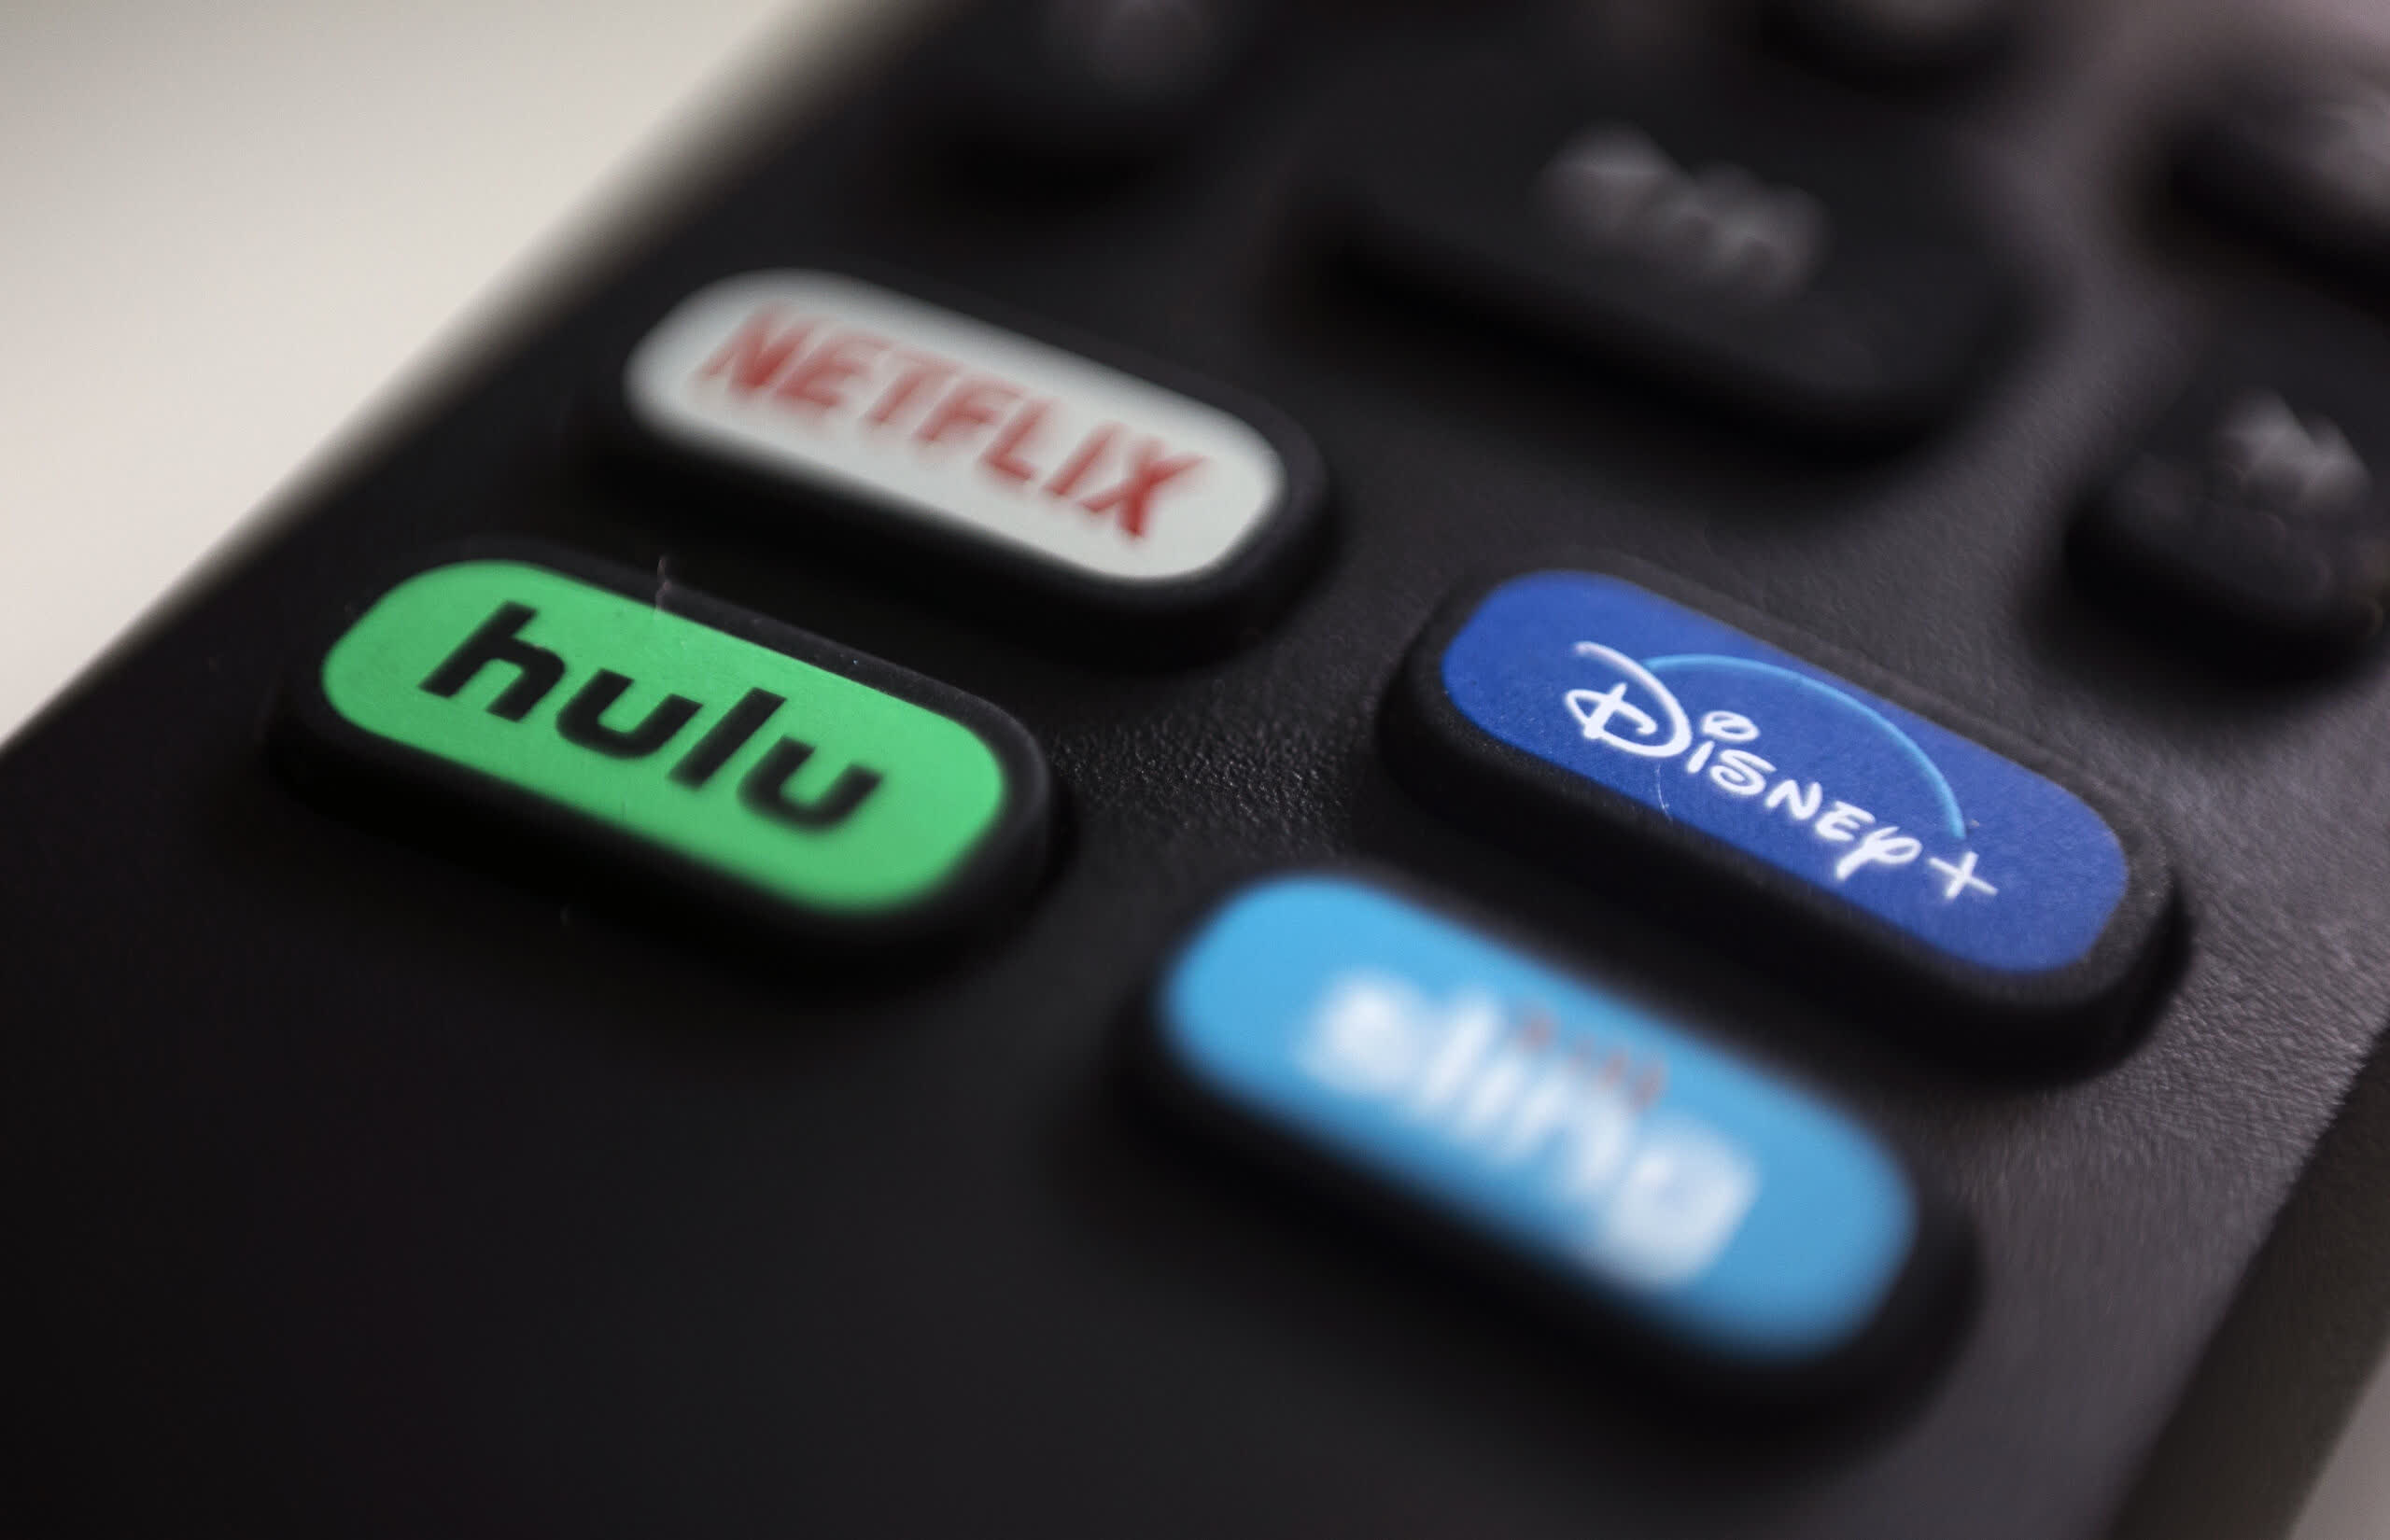 Hulu inks distribution deal with ViacomCBS to bring more channels to its live TV service